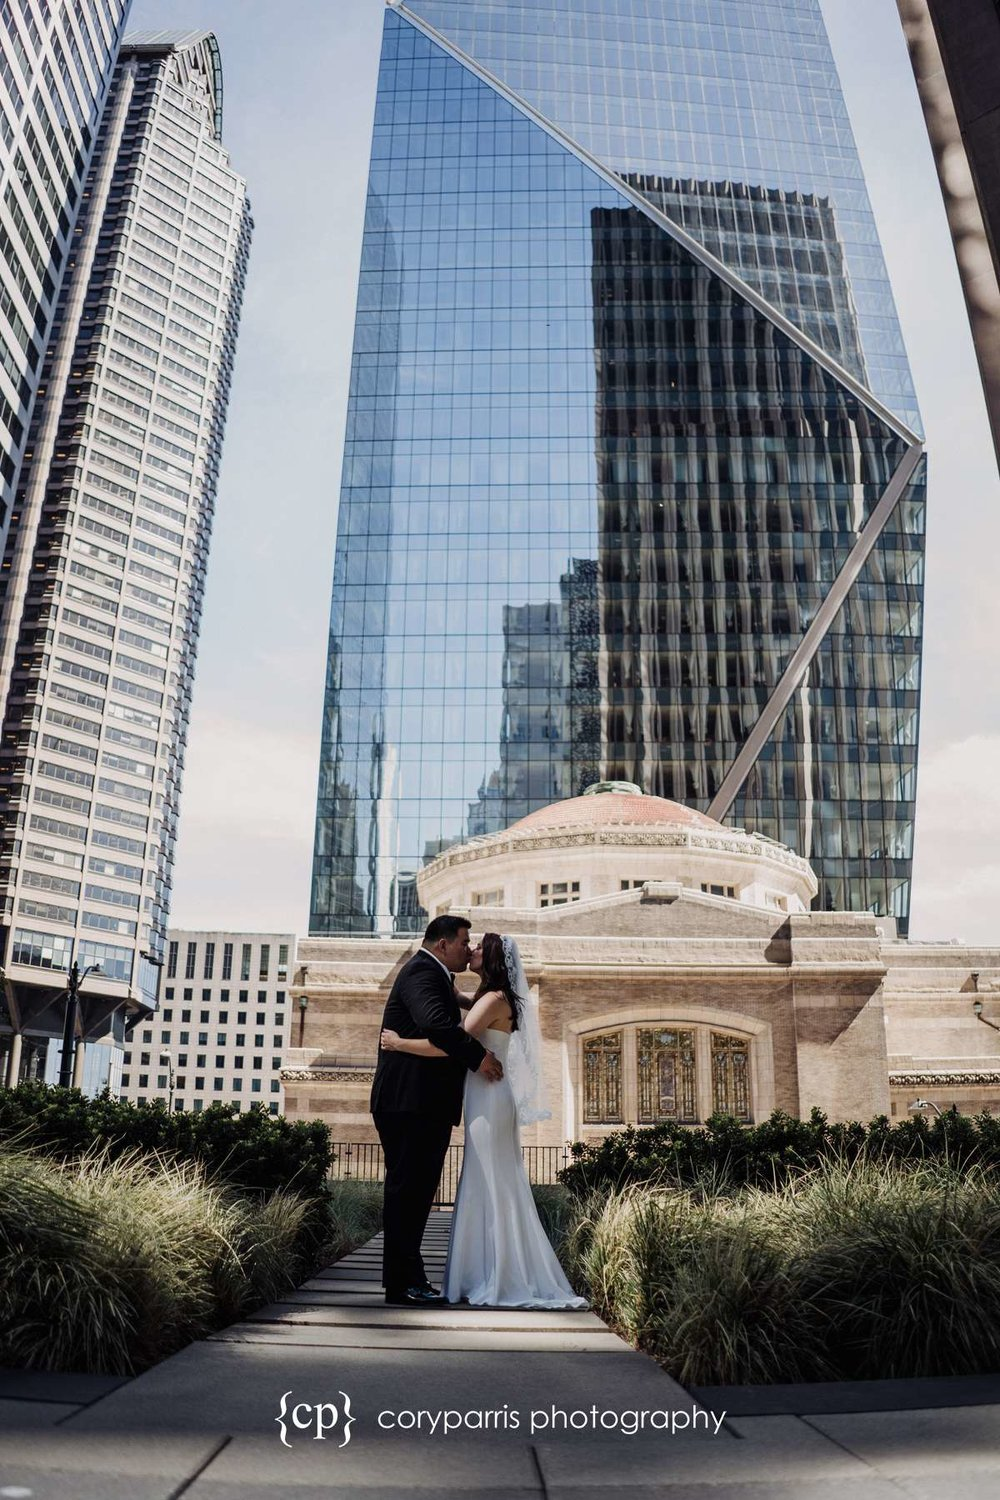 009-Seattle-Courthouse-Wedding-Photography.jpg